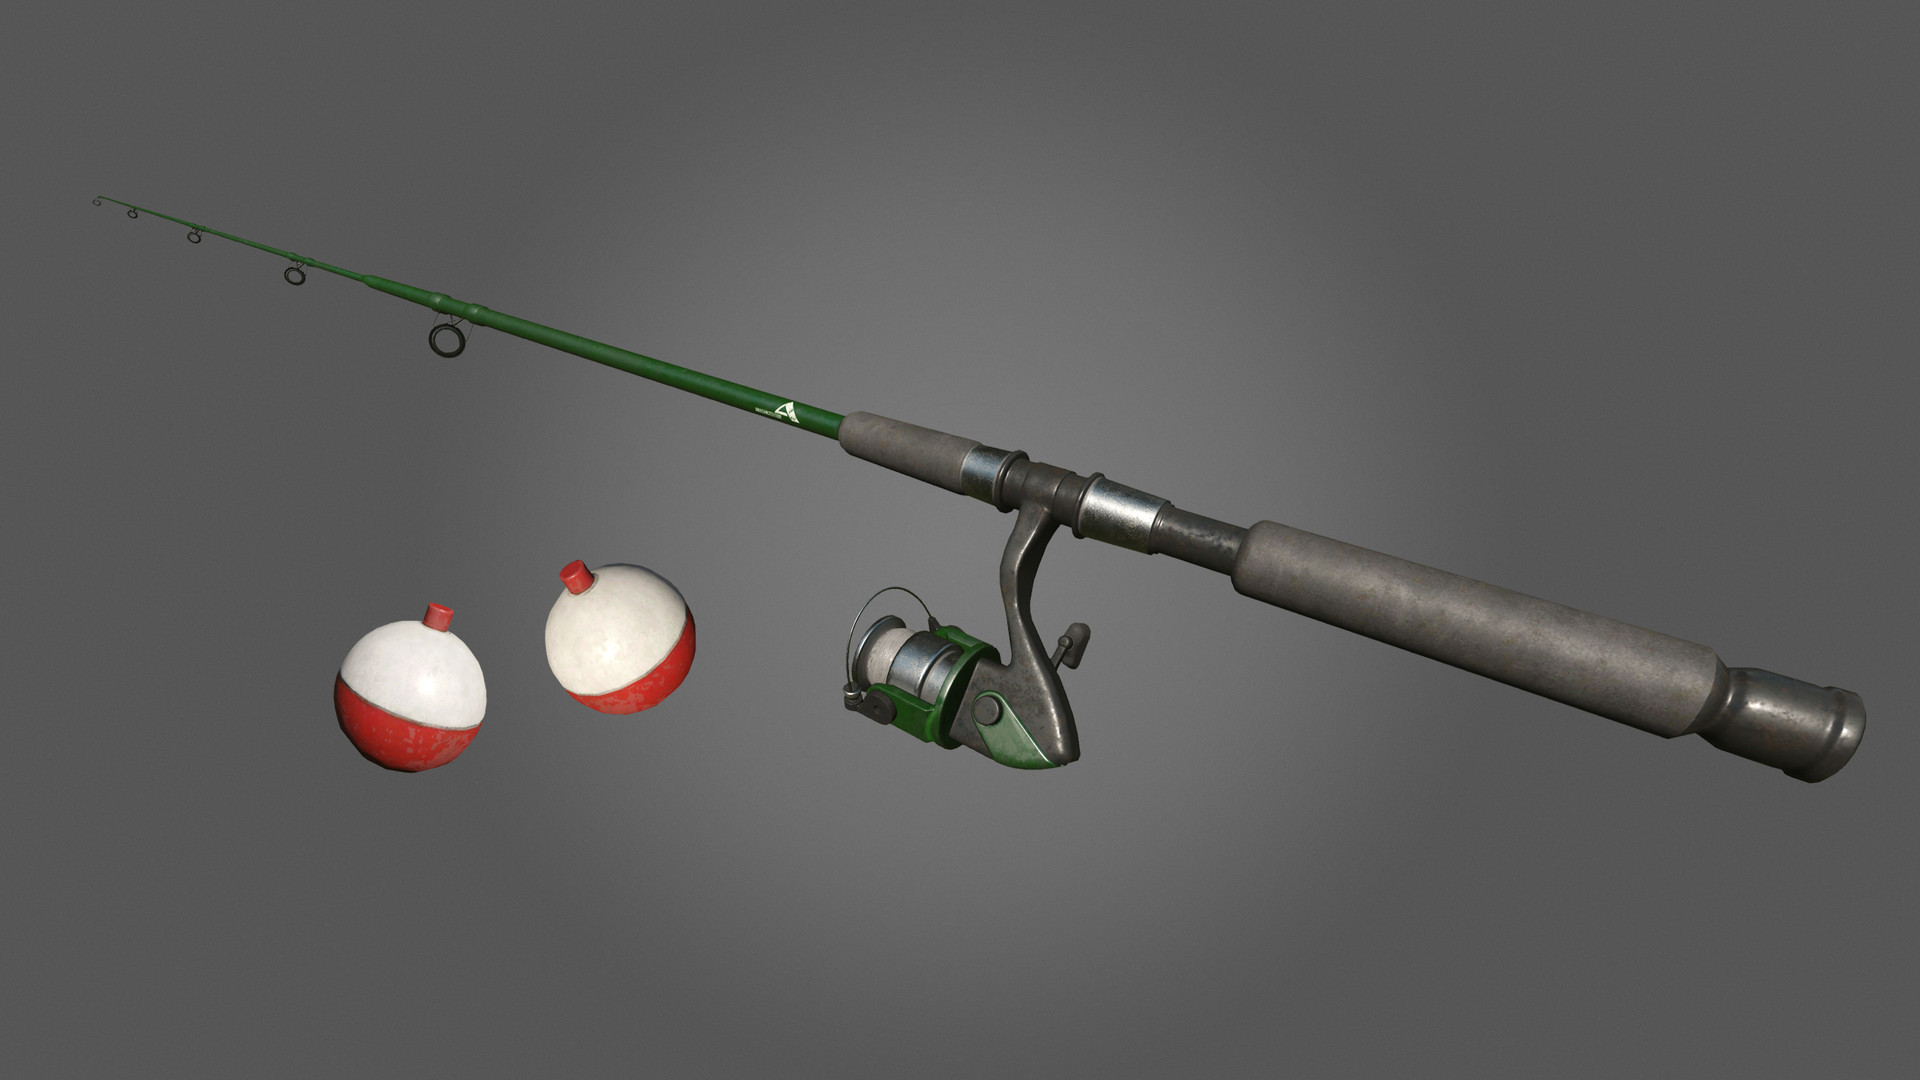 Carl kent fishing rod 3